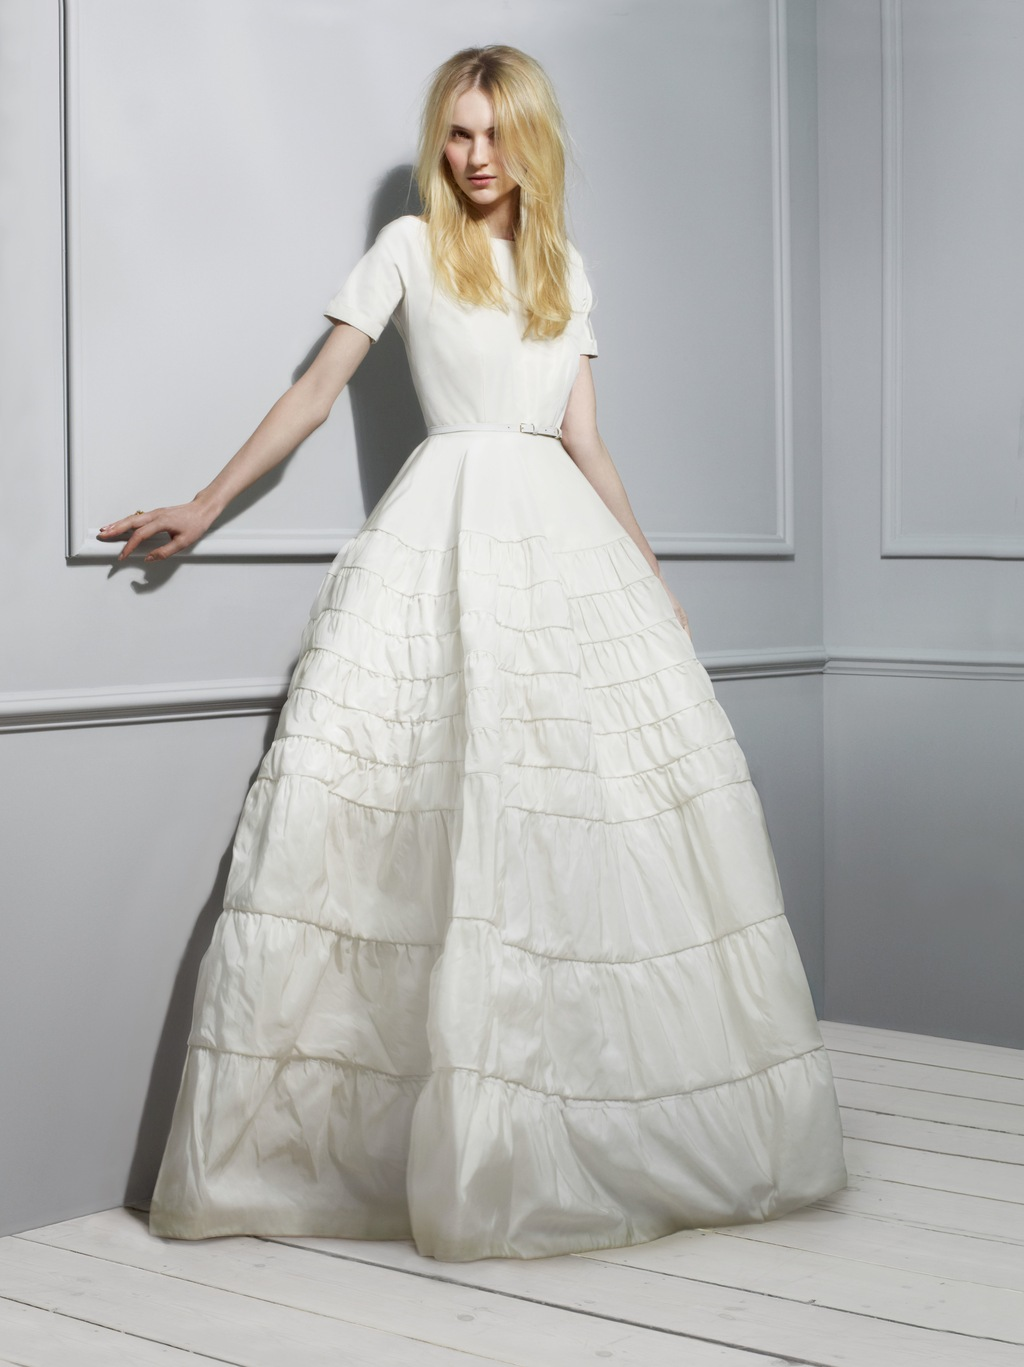 Rochas-taffeta-wedding-dress-2013-exclusive-bridal-designer-collection-from-net-a-porter.full